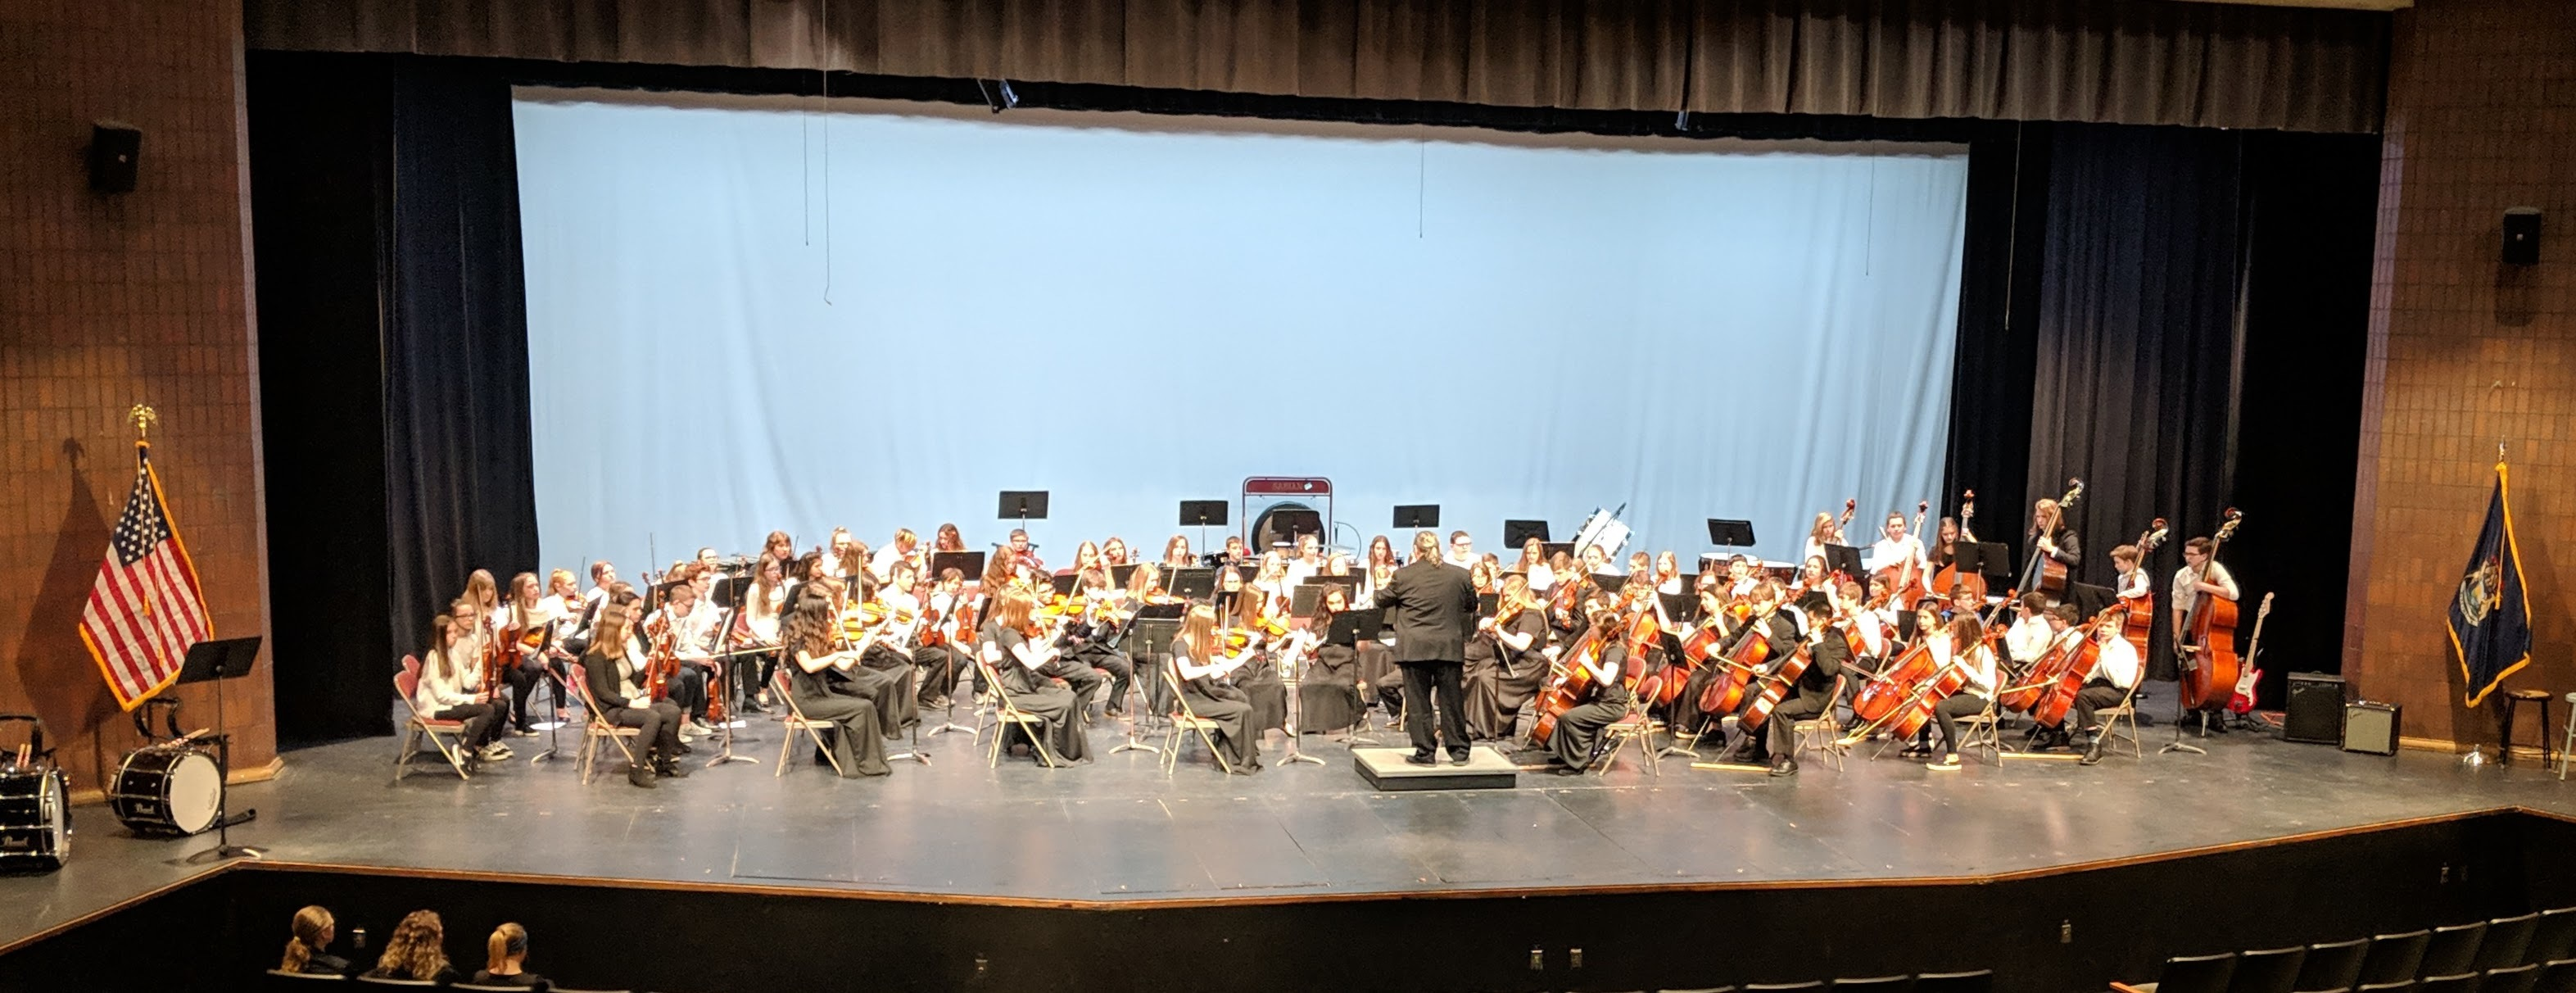 Members of the 6th grade, Pathfinder, and high school orchestras performed for our 4th graders to help them decide which elective choice to make for 5th grade.